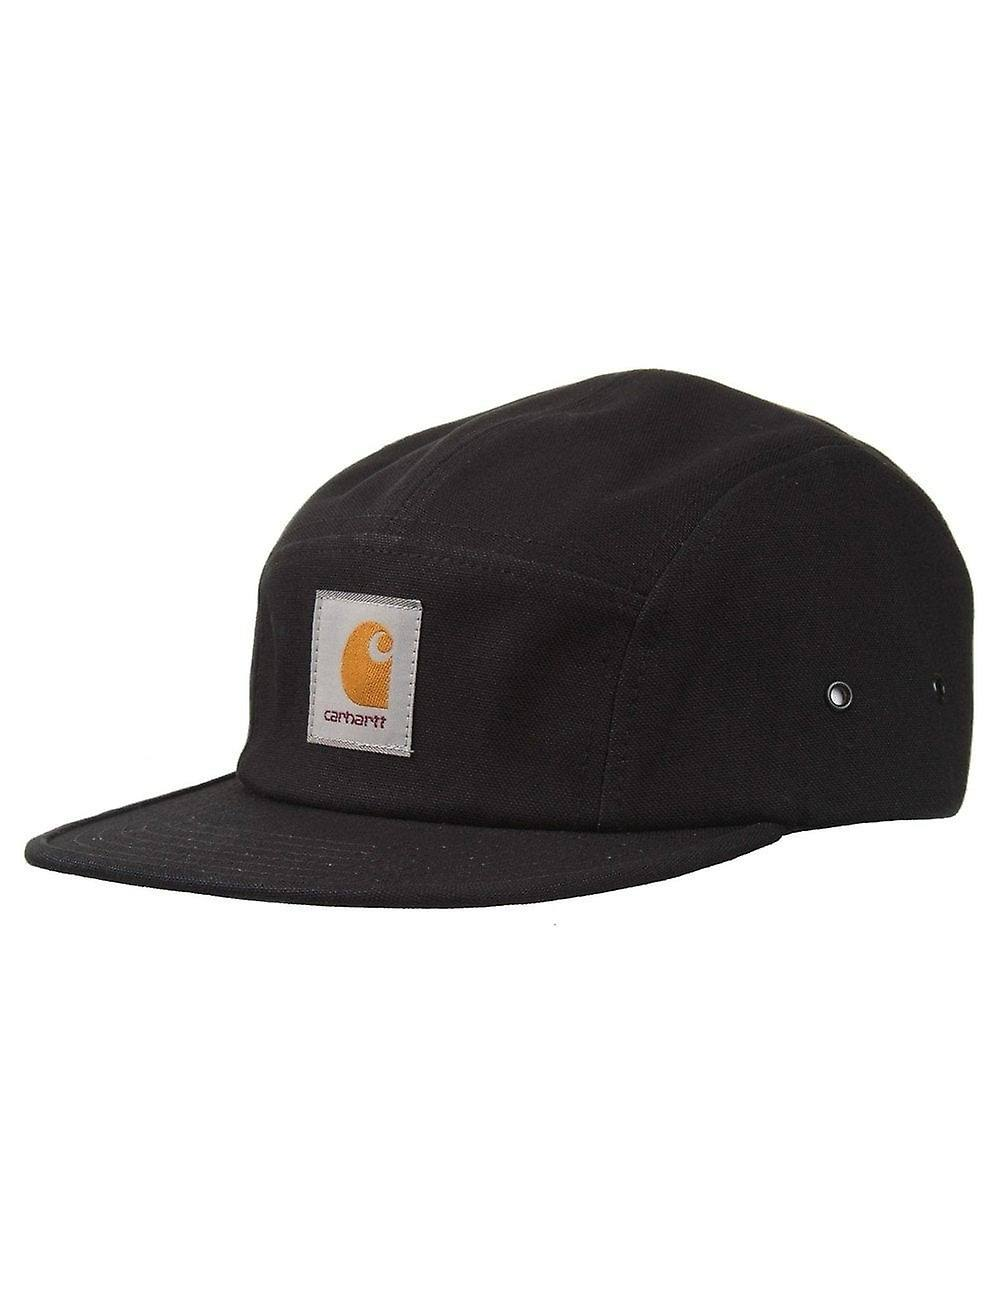 Backley 5 Carhartt Wip CapBlack Black Panel 80wOknP